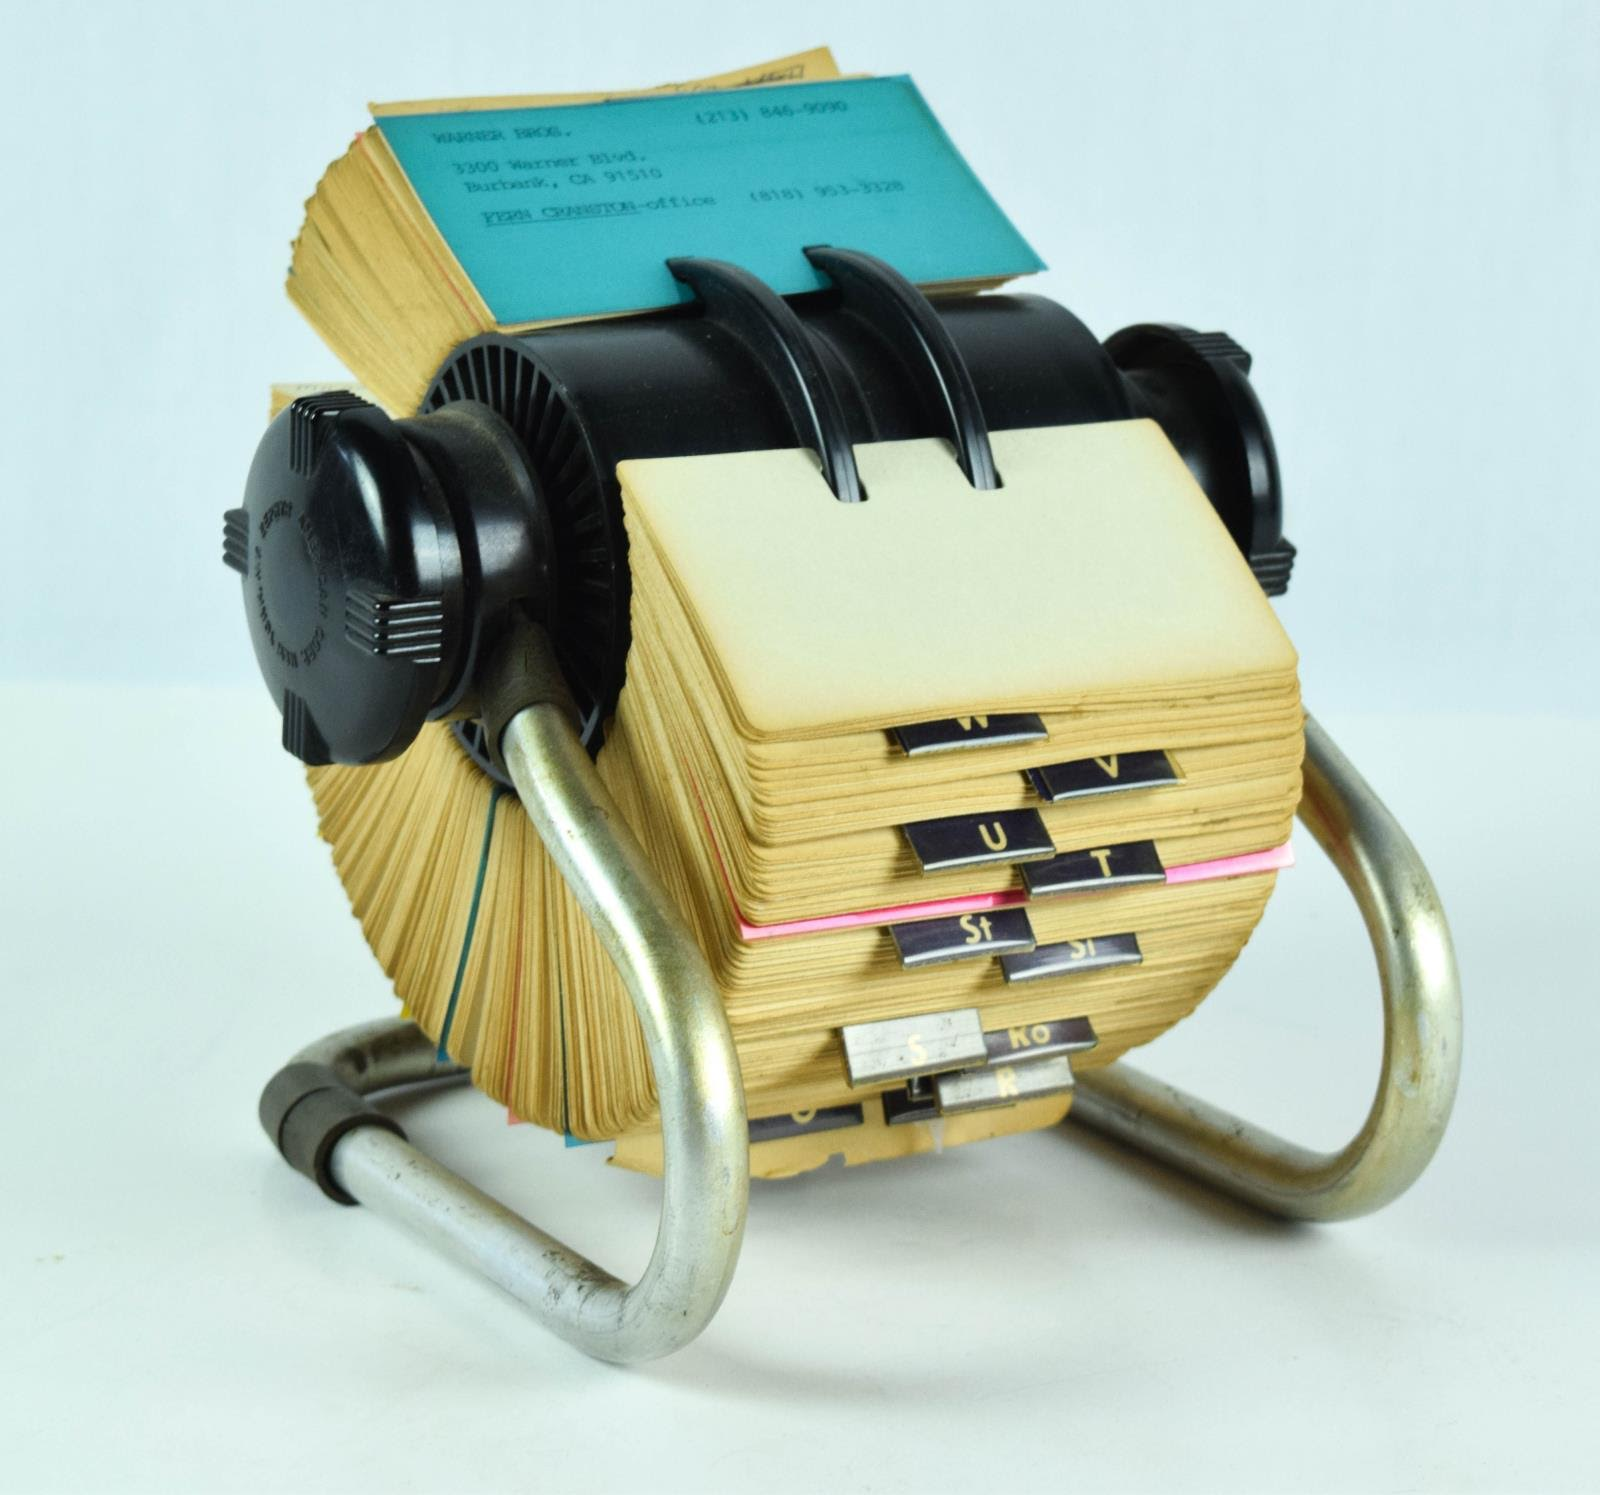 GD rolodex will be auctioned off